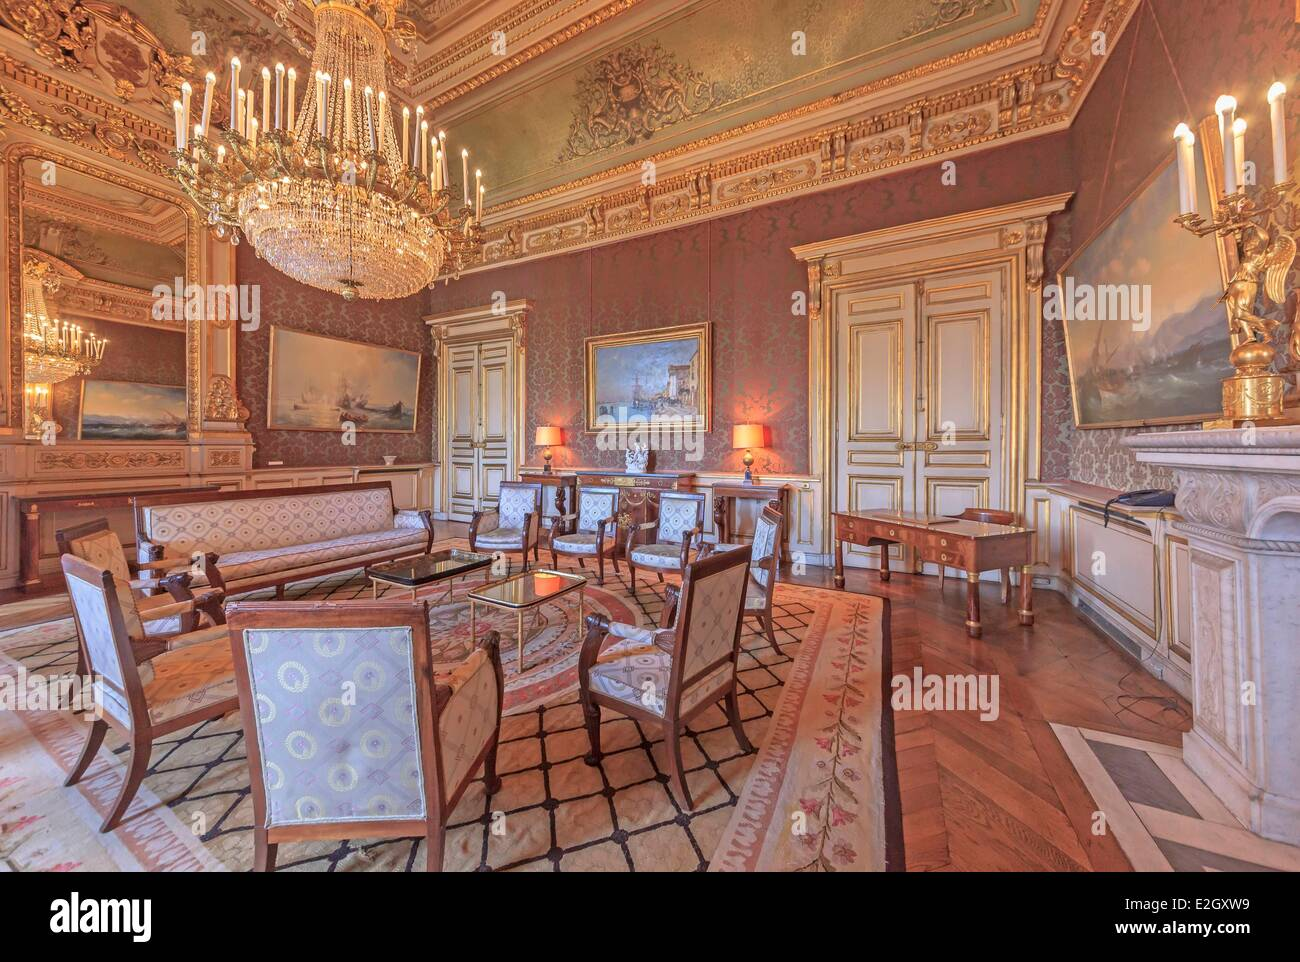 France Paris Quai d'Orsay hotel of Foreign Ministry empire room Stock Photo